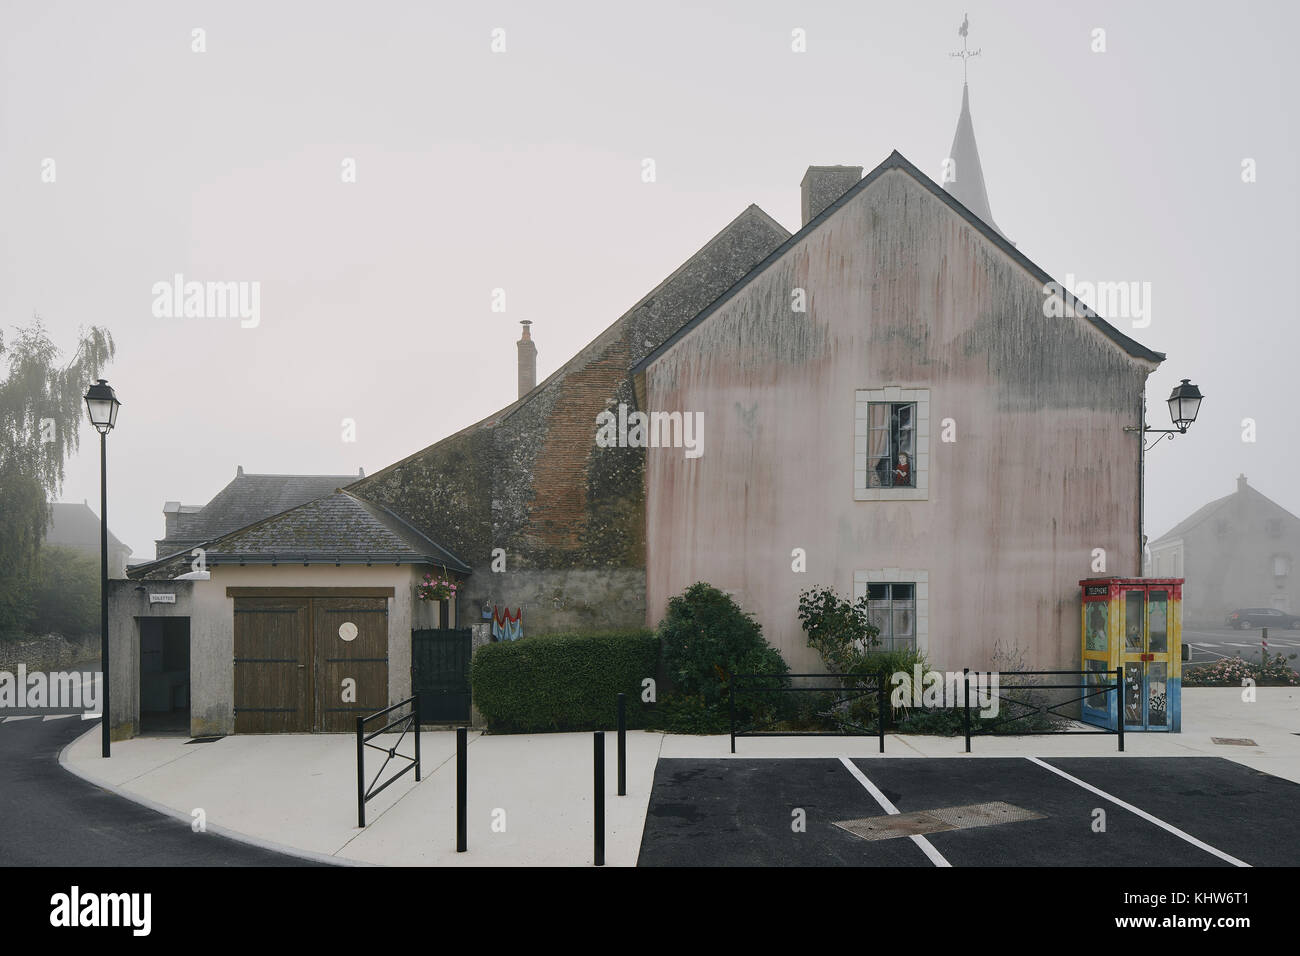 House gable and parking lot in Meigne-le-Vicomte village on misty morning, Loire Valley, France - Stock Image